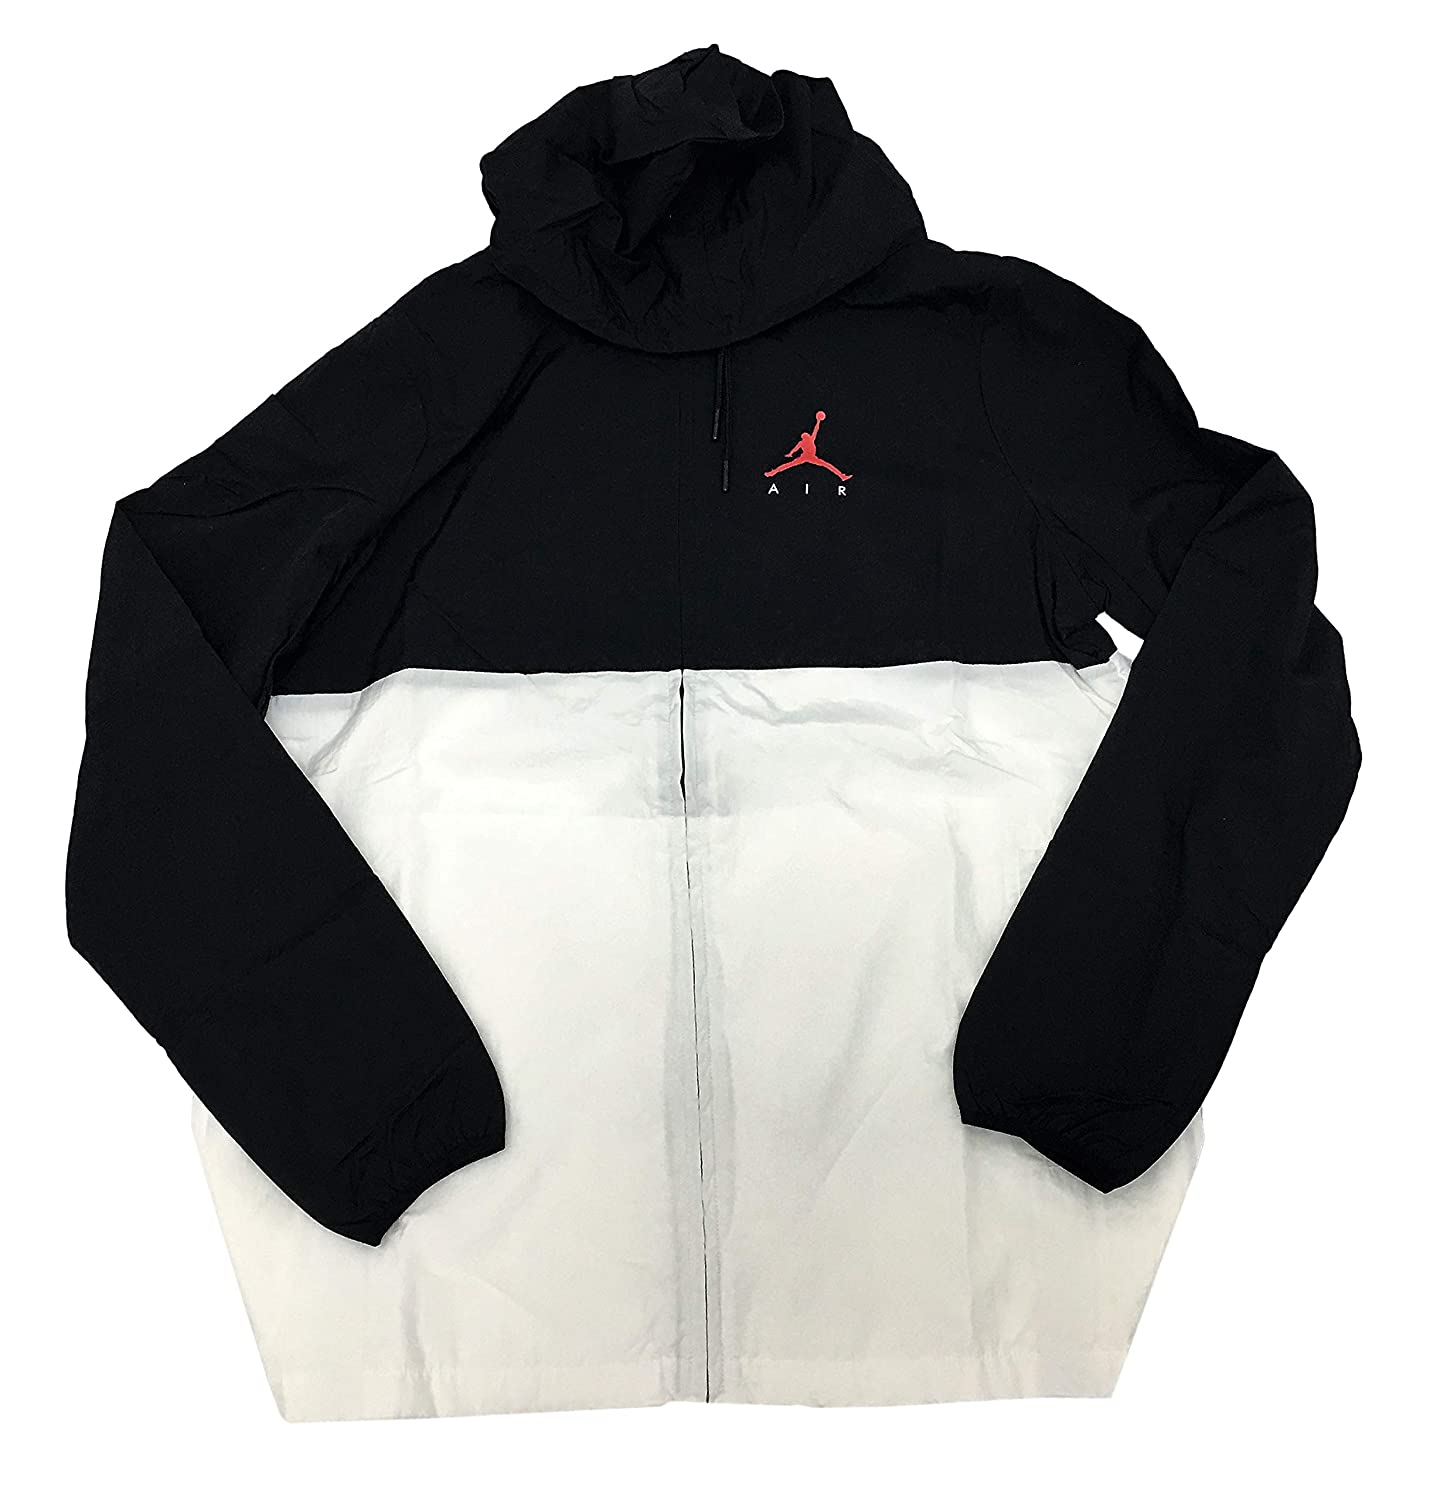 51492edf558 Jordan Jumpman Air Windbreaker at Amazon Men's Clothing store: